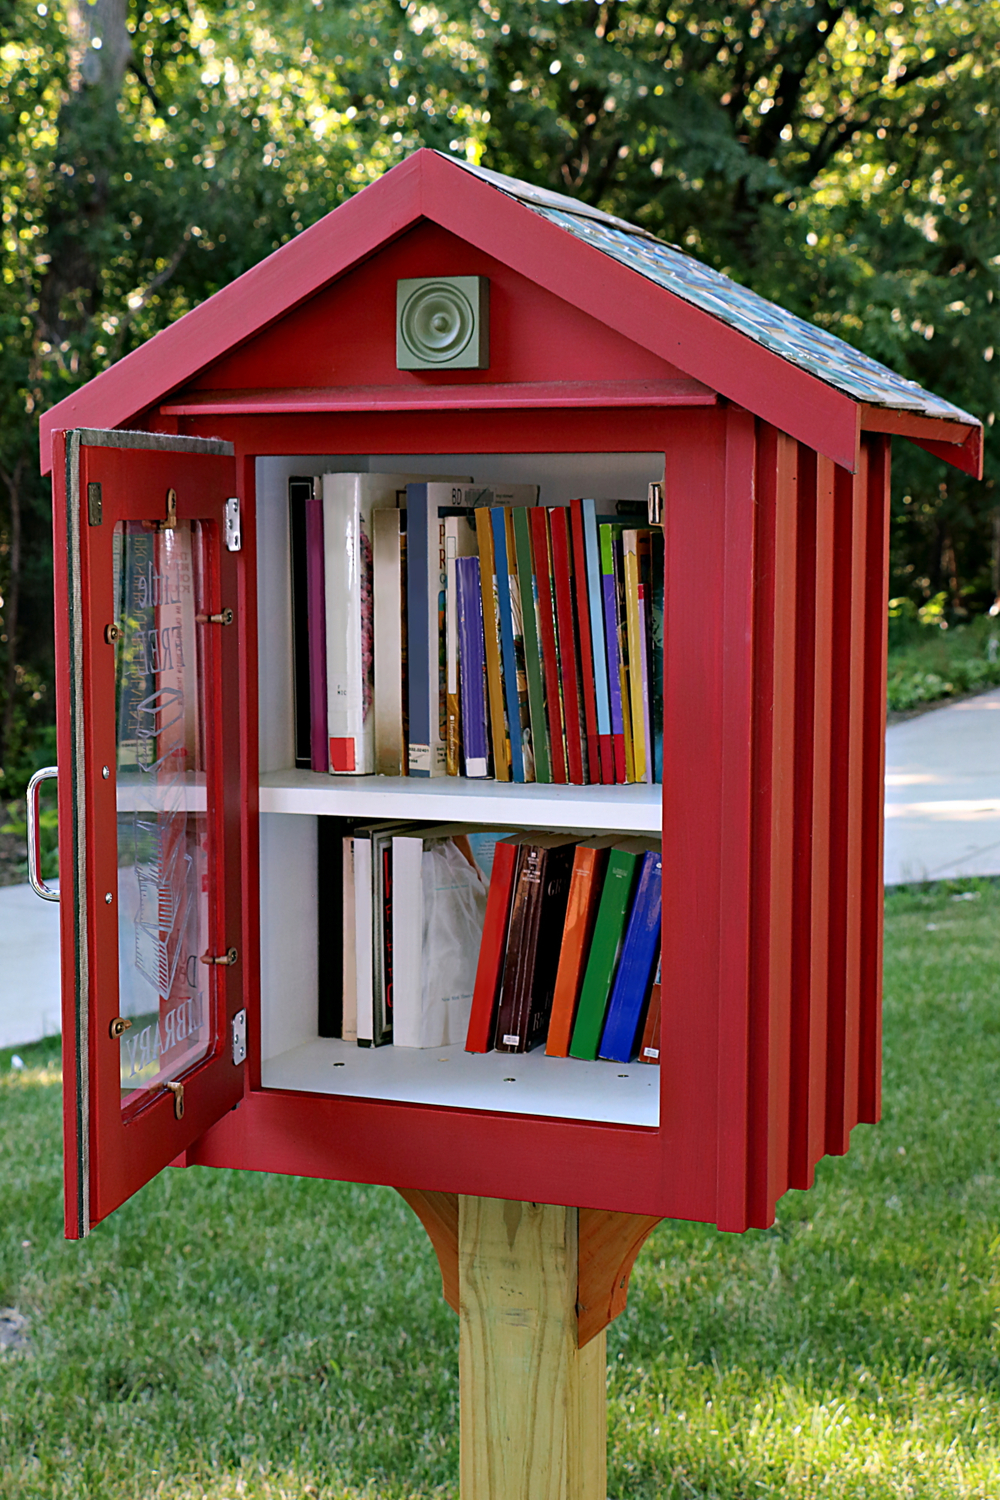 A little library with the door open showing where to donate books.